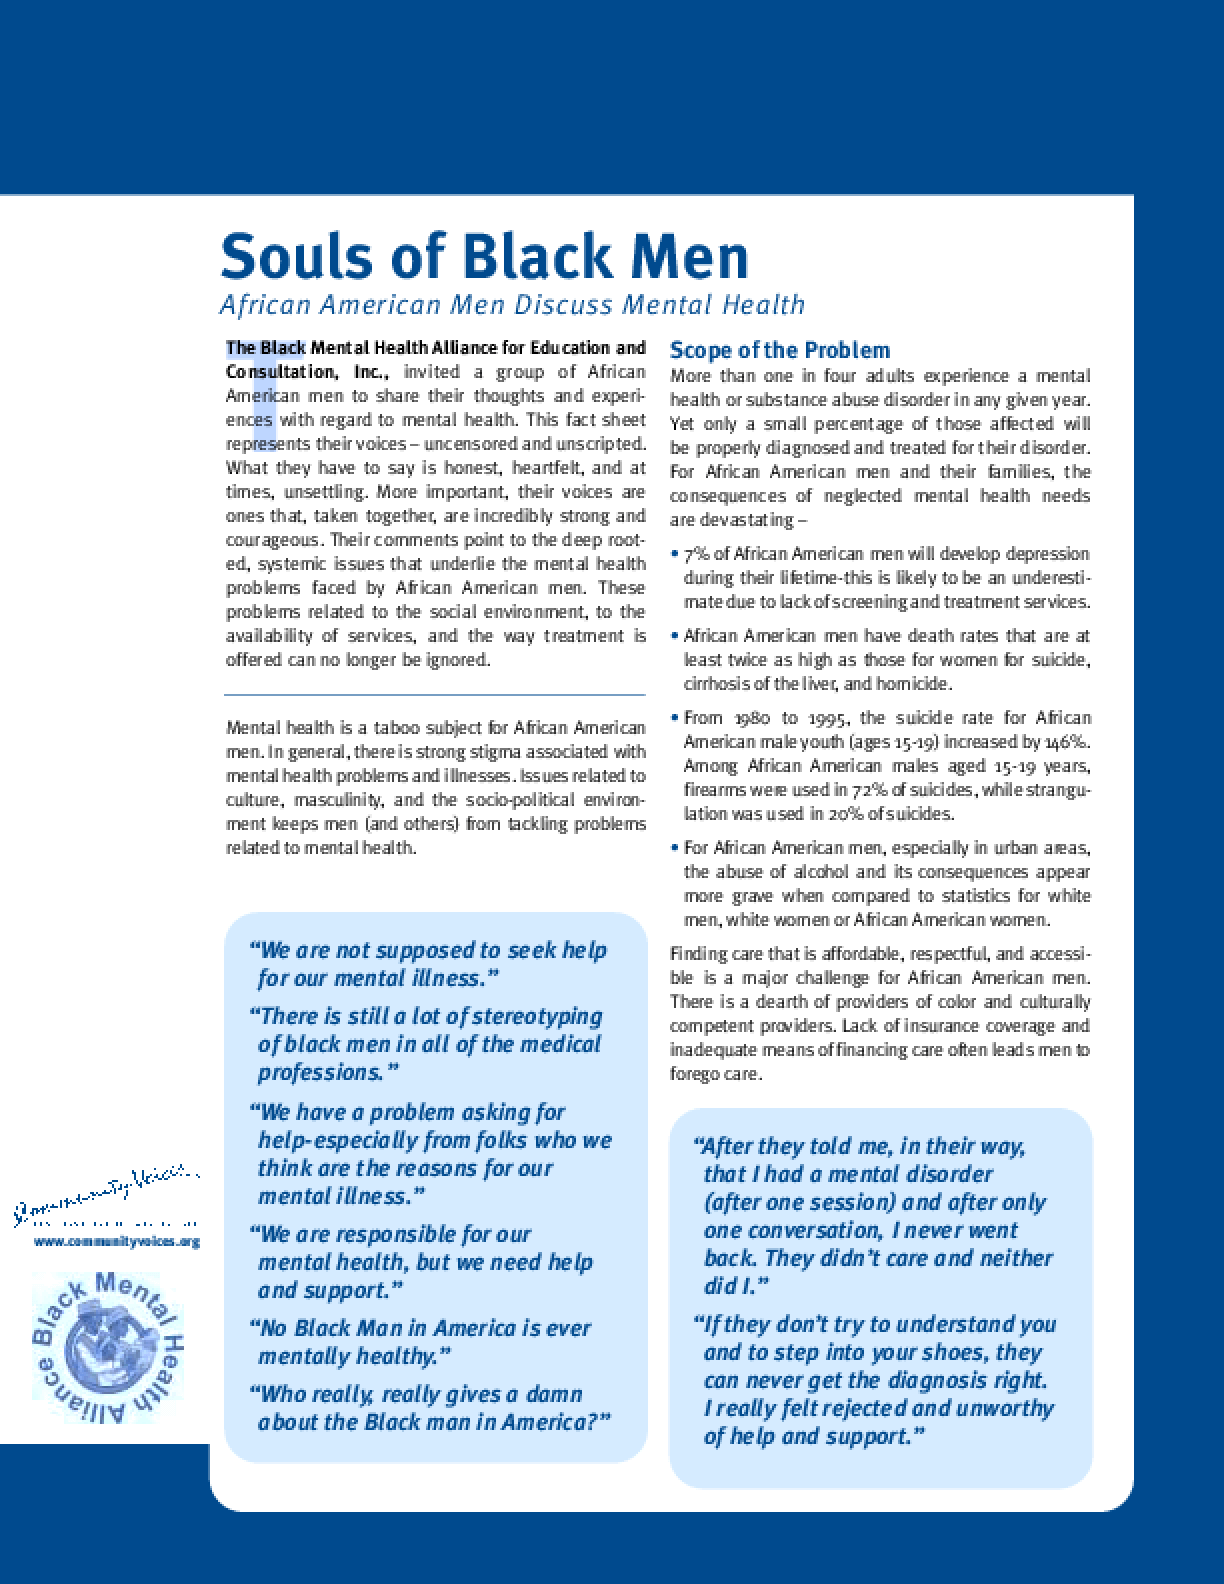 Souls of Black Men: African American Men Discuss Mental Health